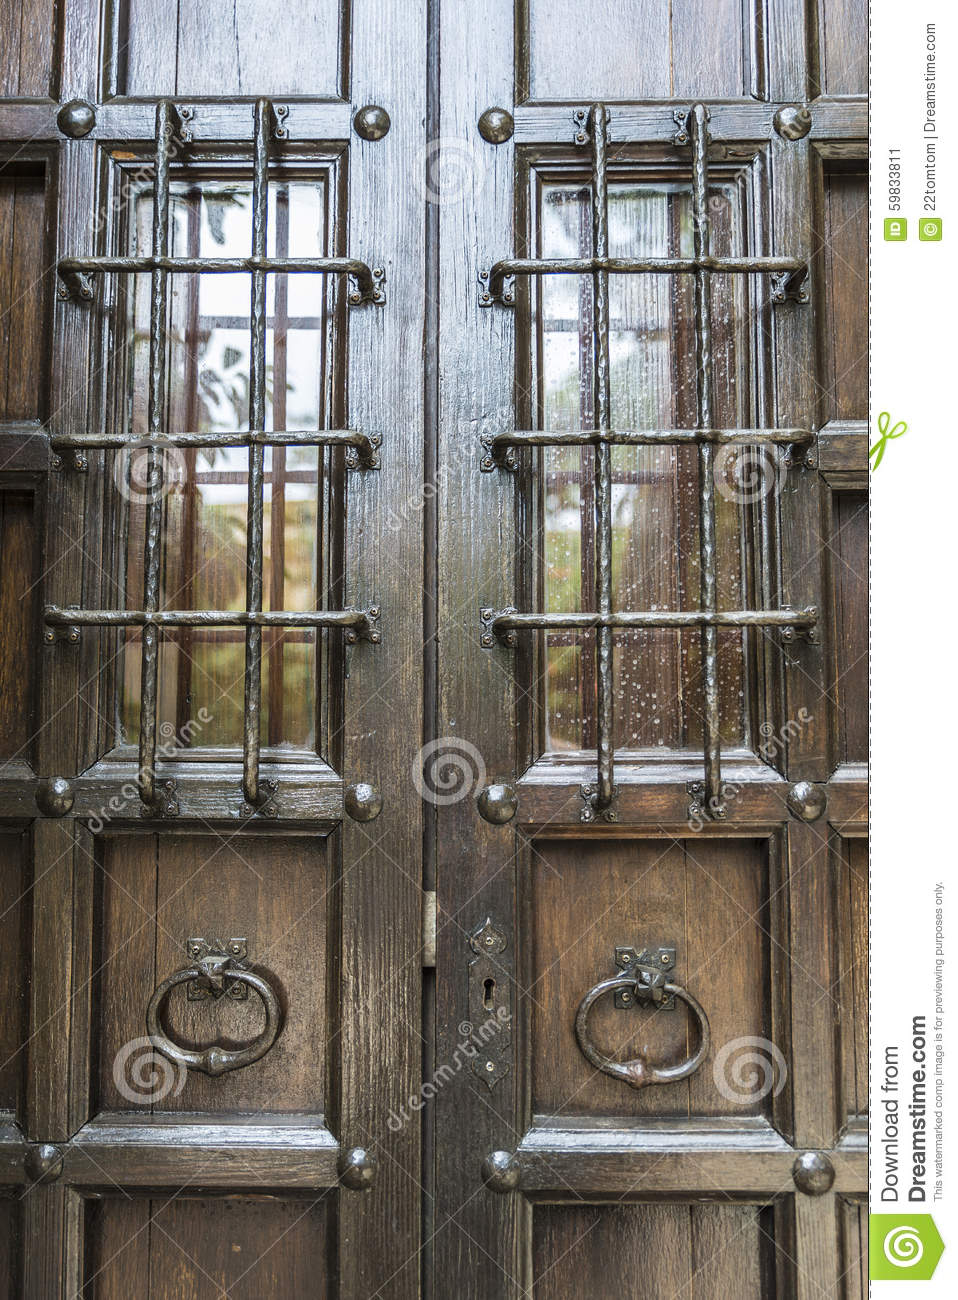 Old barred door stock image. Image of doorway, iron, home ...